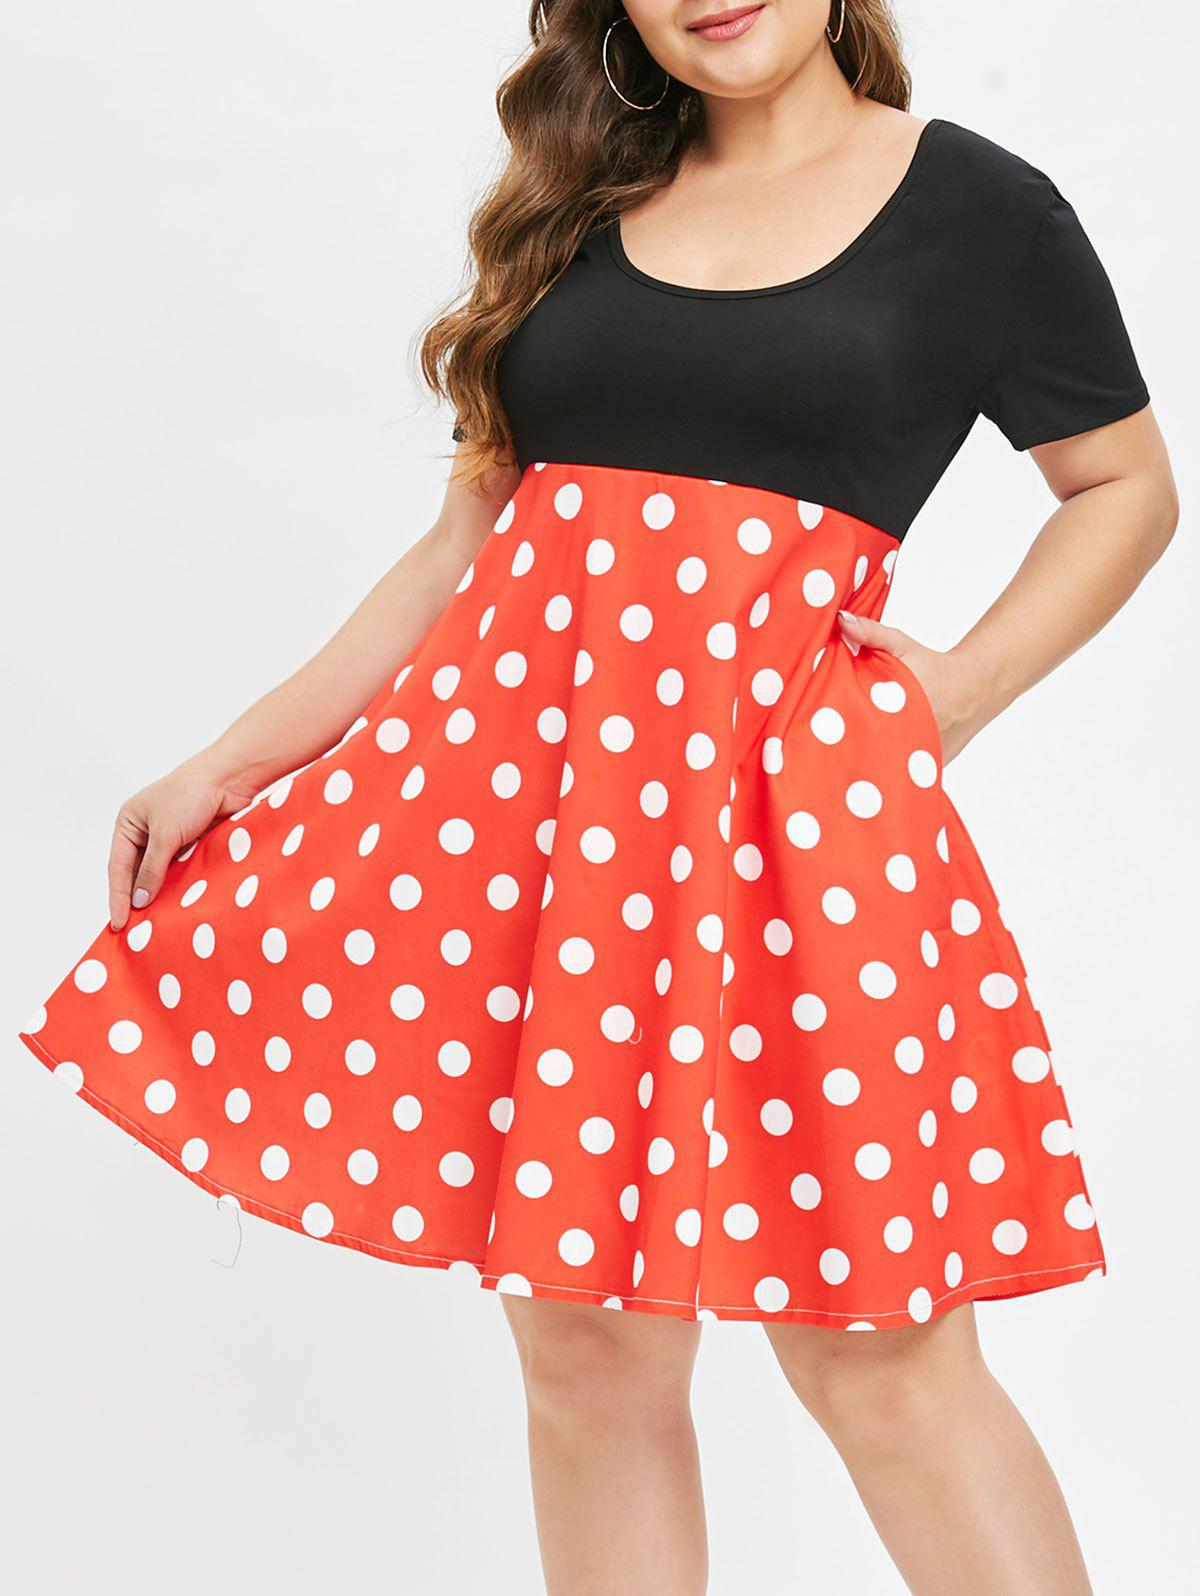 Shop Plus Size Vintage Polka Dot Flare Dress